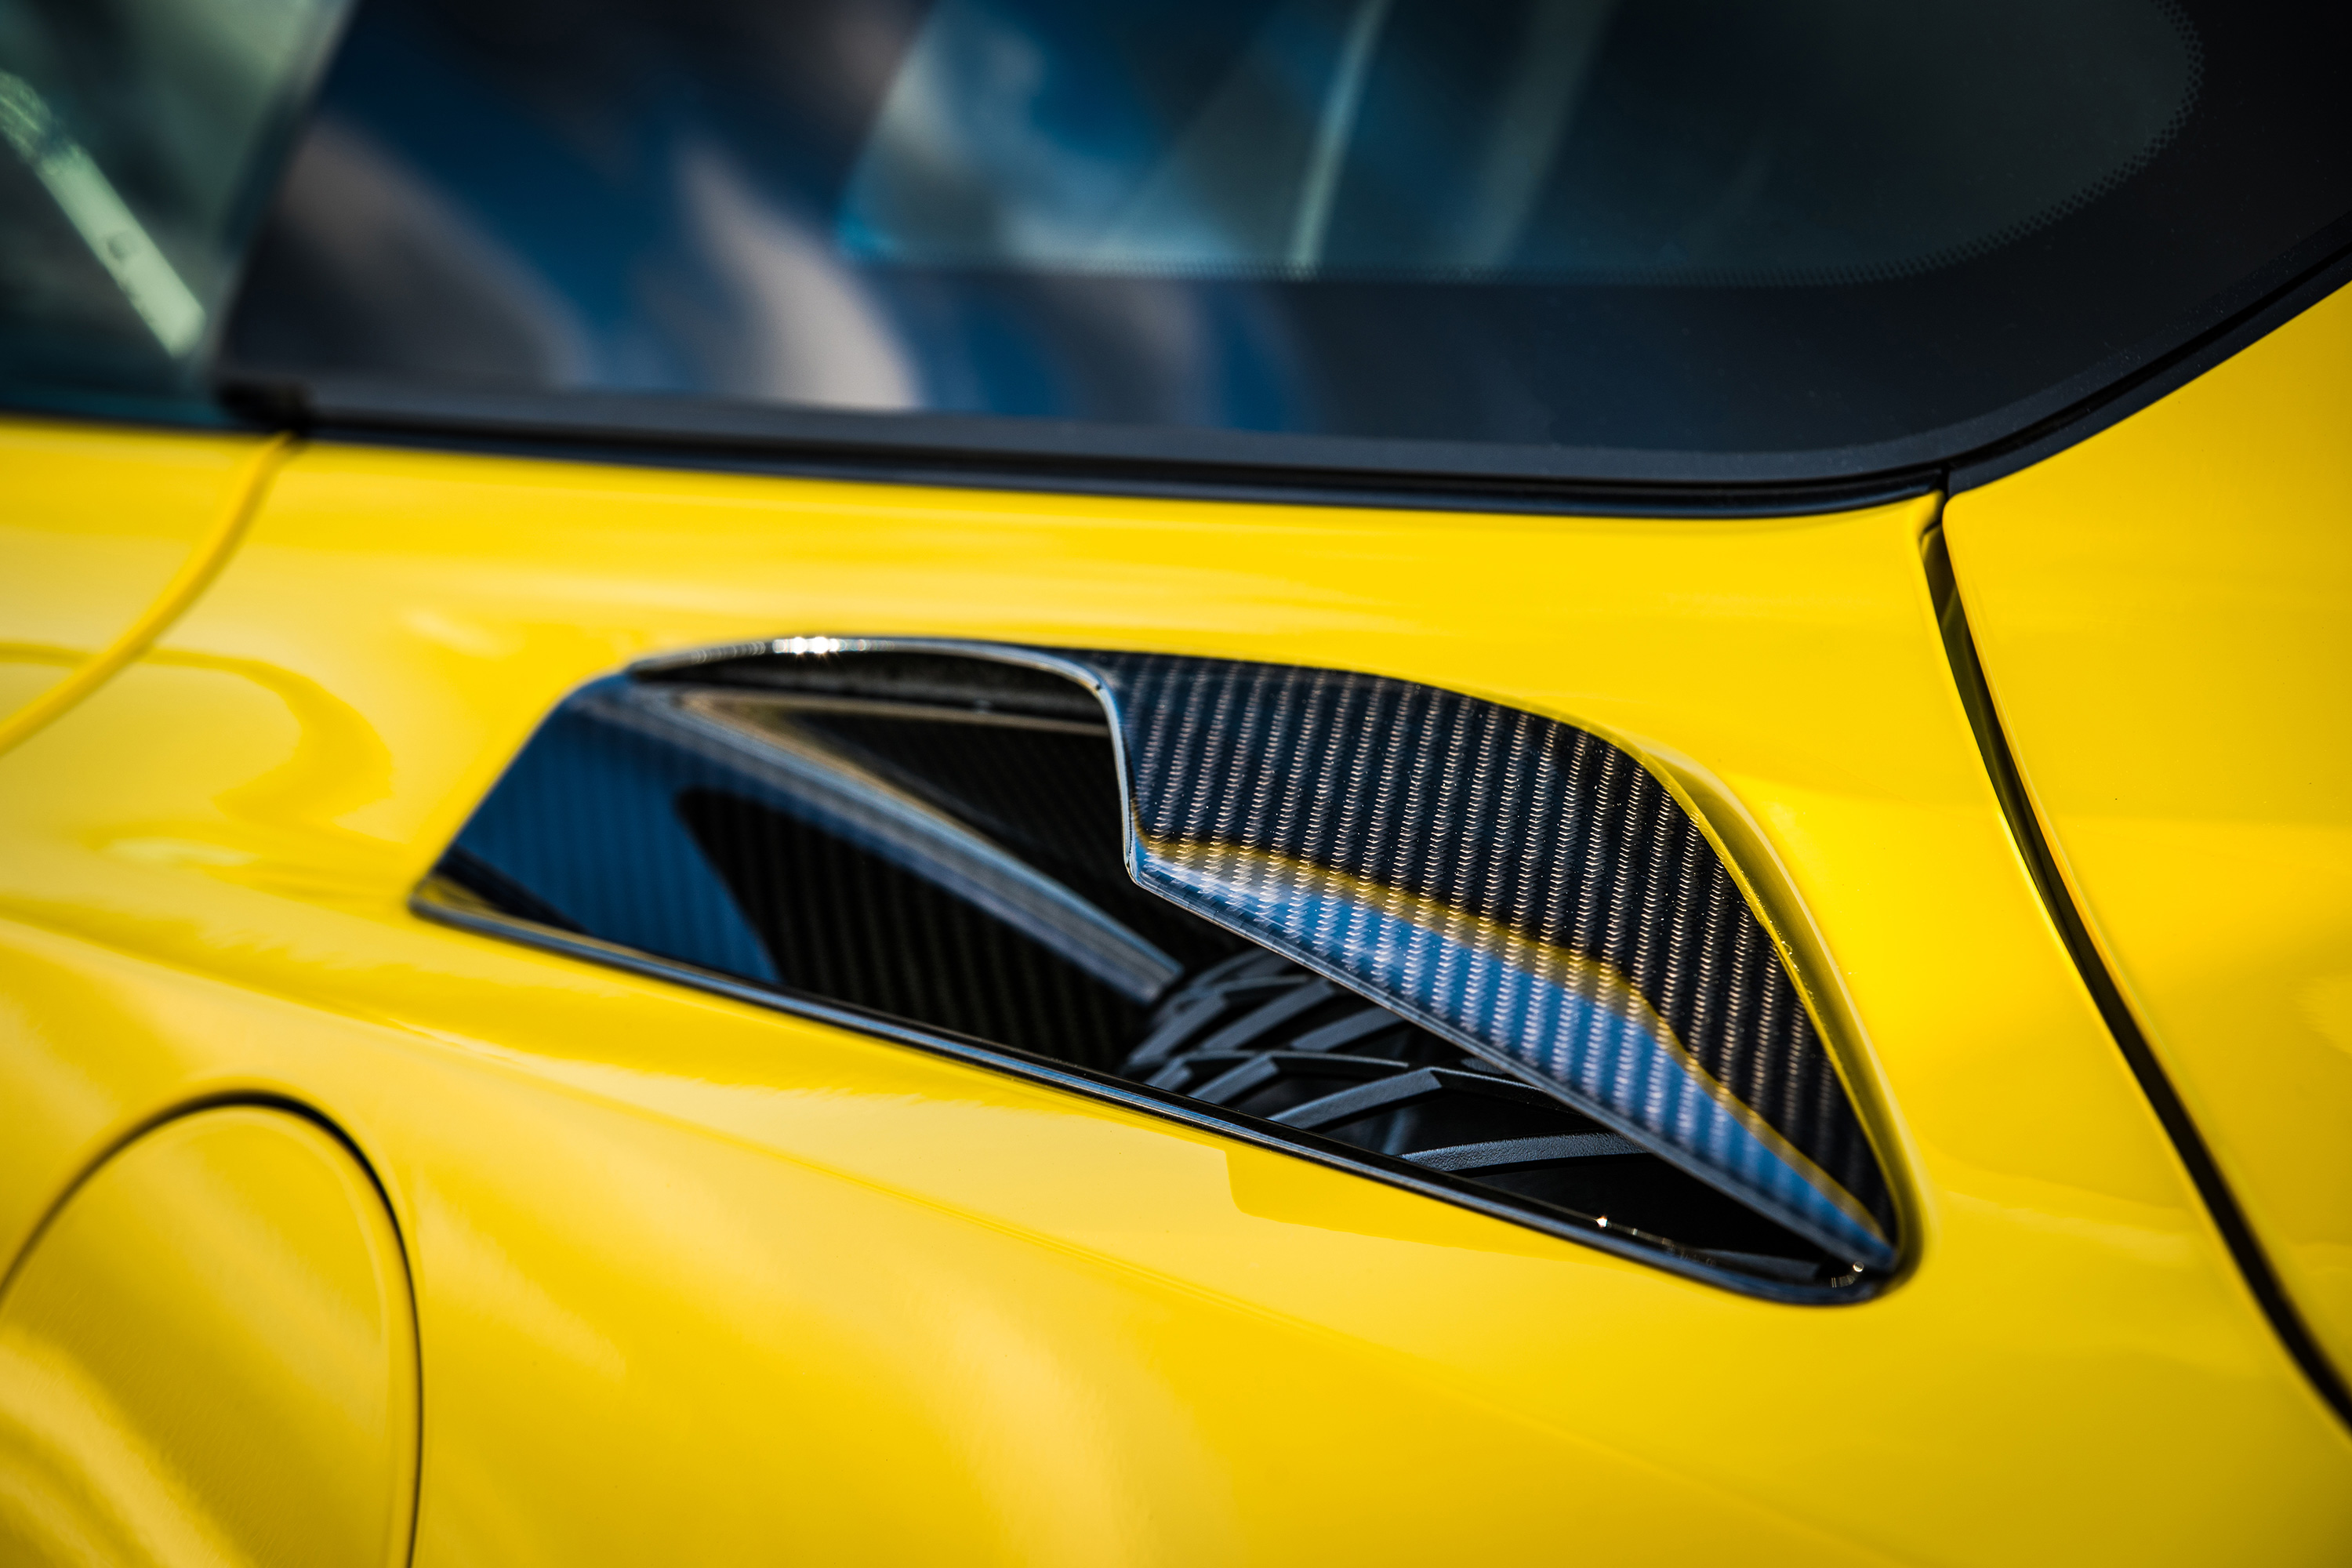 2019 chevrolet zr1 rear air intake yellow carbon fiber